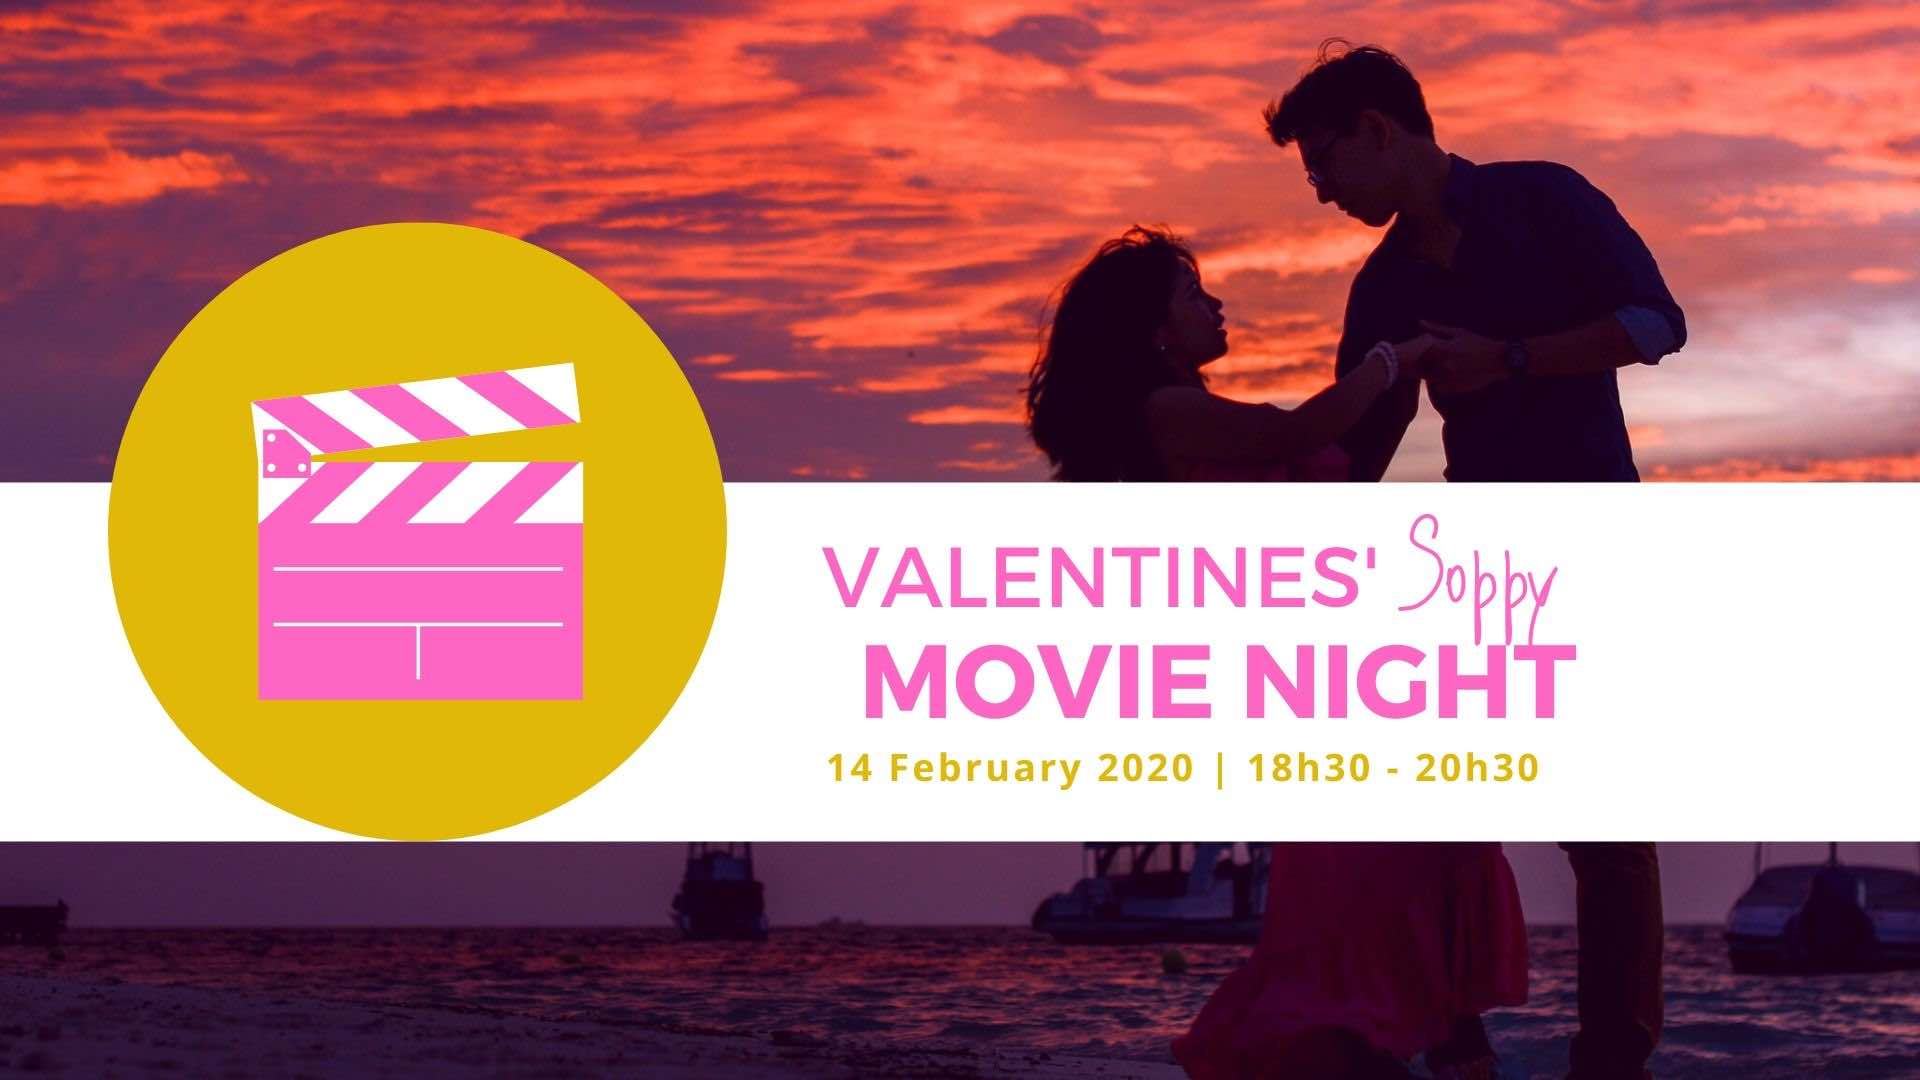 Romantic People Dancing Movie Night Main Image